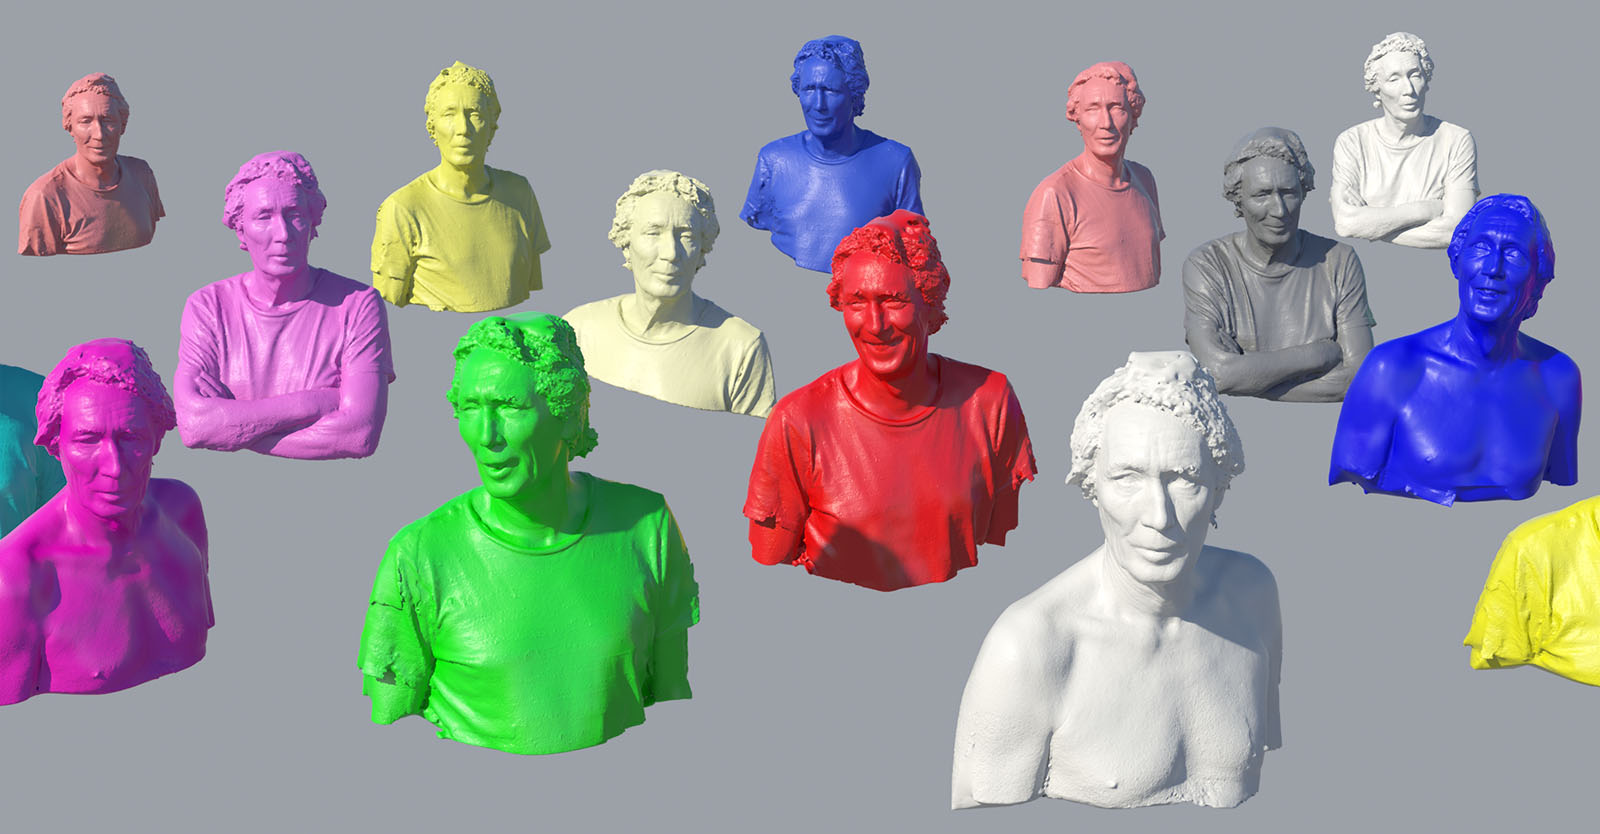 Serie of 3D scan face with different expressions